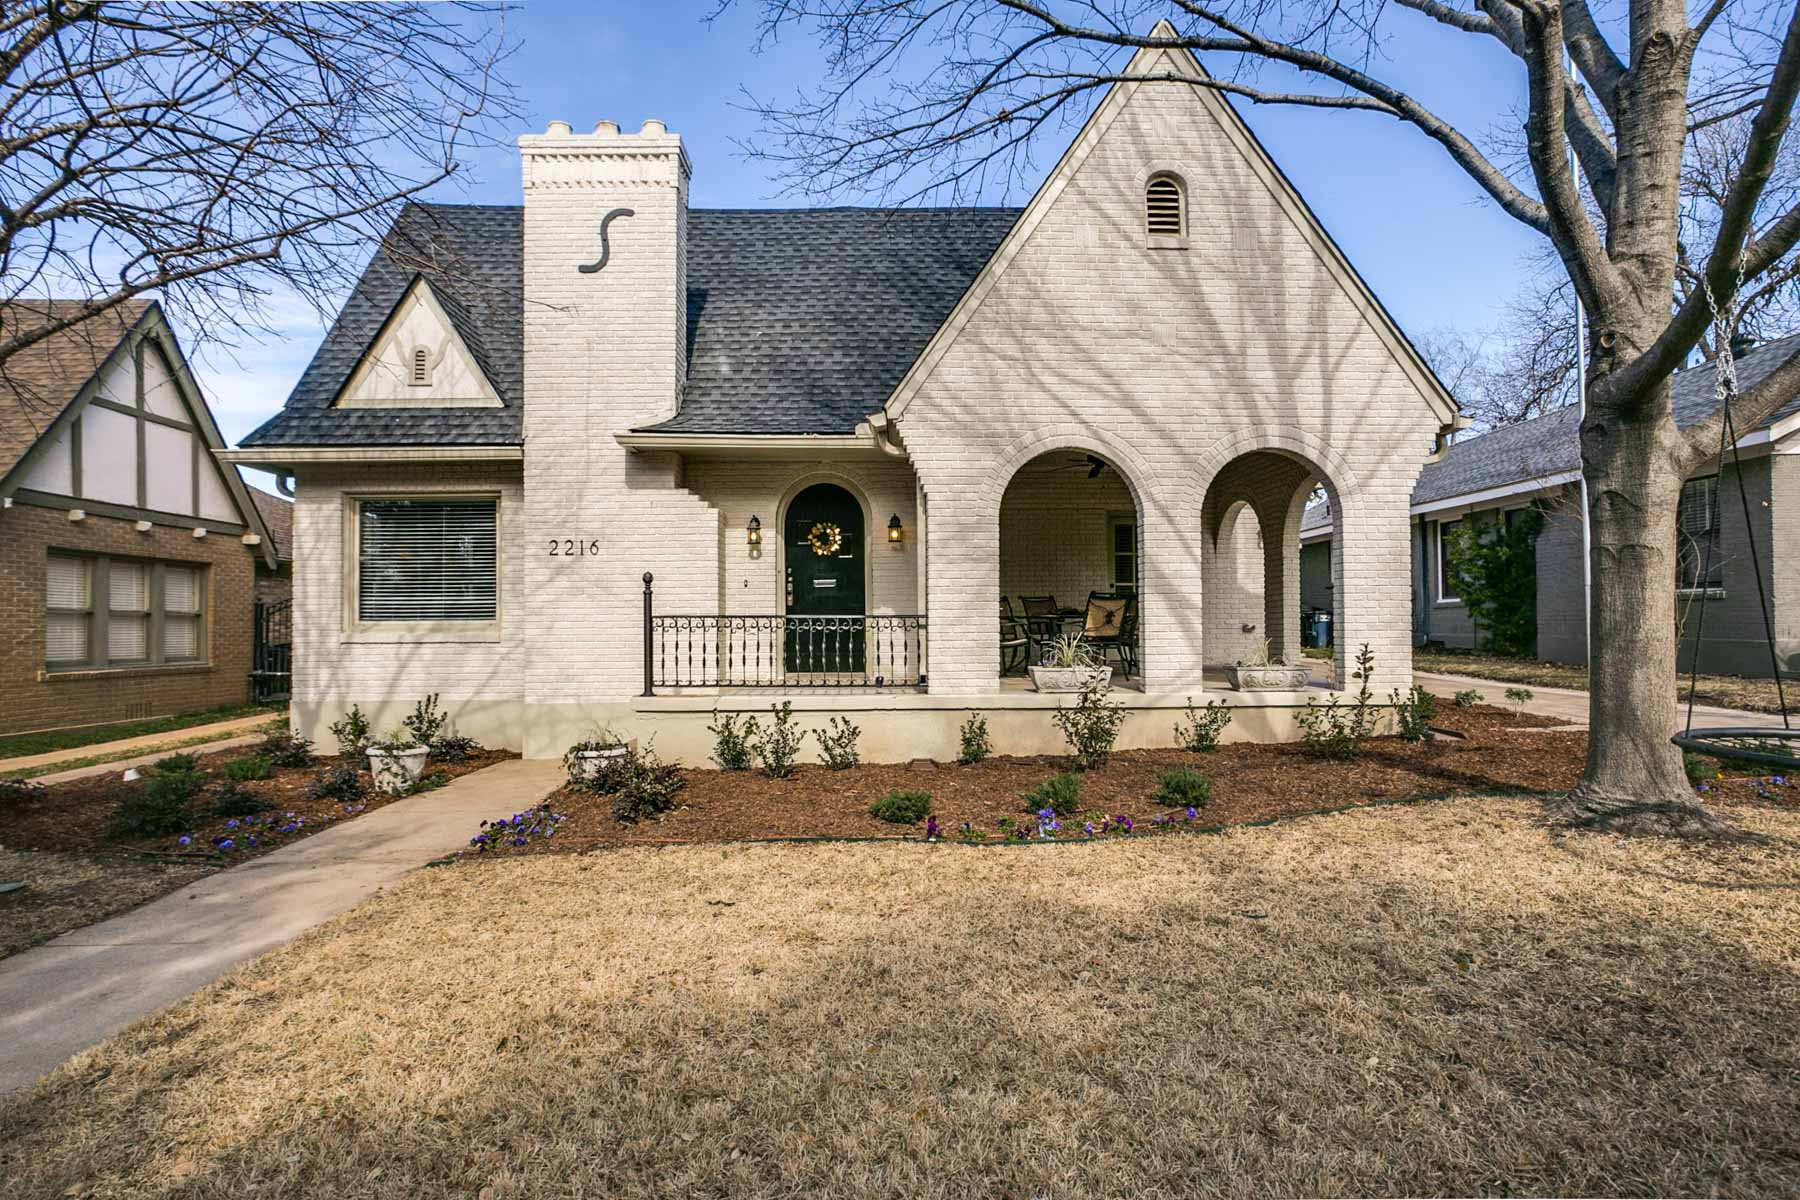 Single Family Home for Sale at 2216 Wilshire Blvd, Fort Worth Fort Worth, Texas, 76110 United States